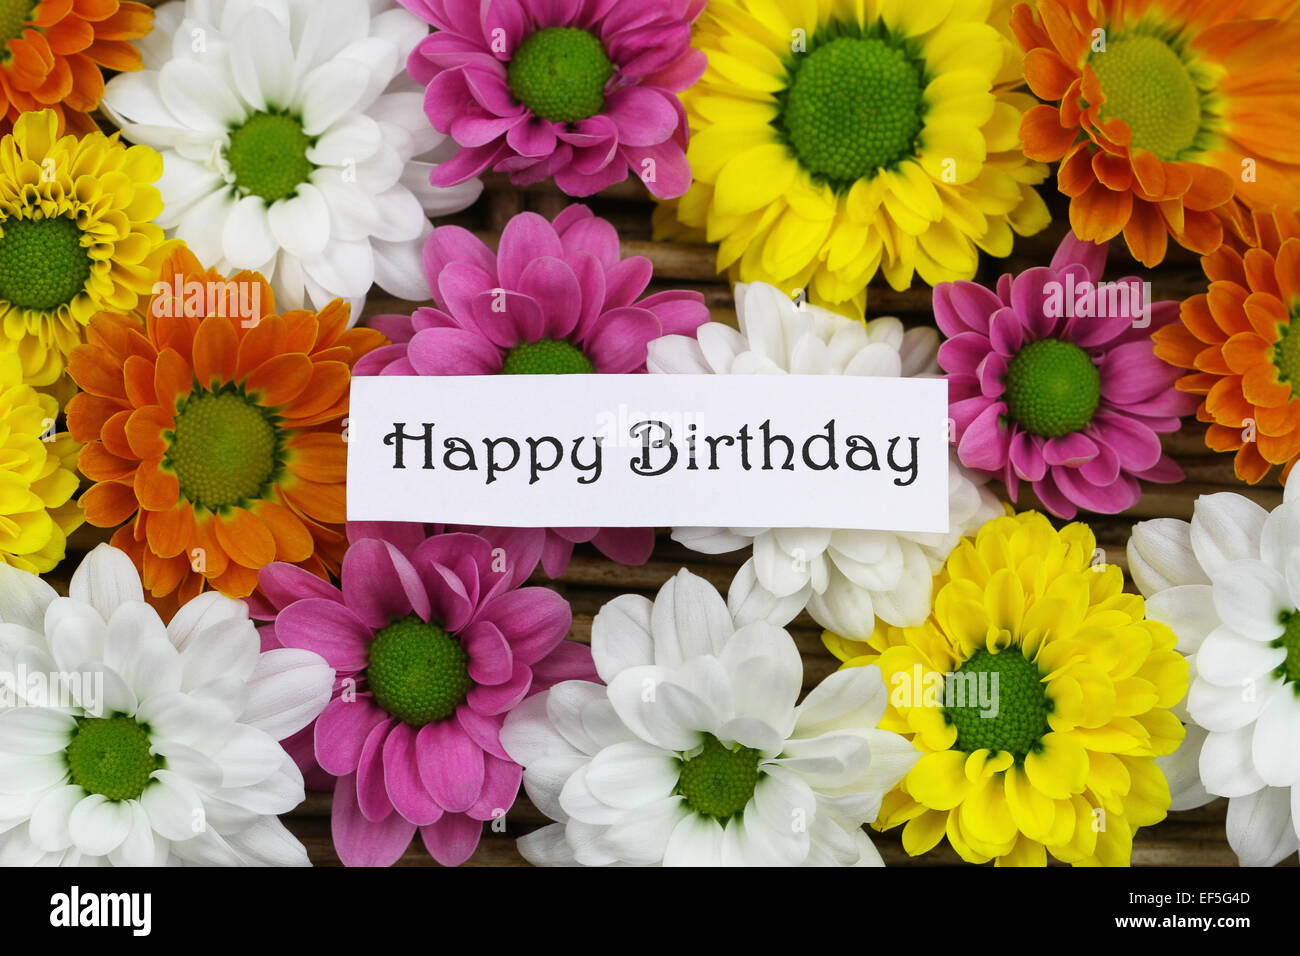 Happy birthday card with colorful santini flowers stock photo happy birthday card with colorful santini flowers izmirmasajfo